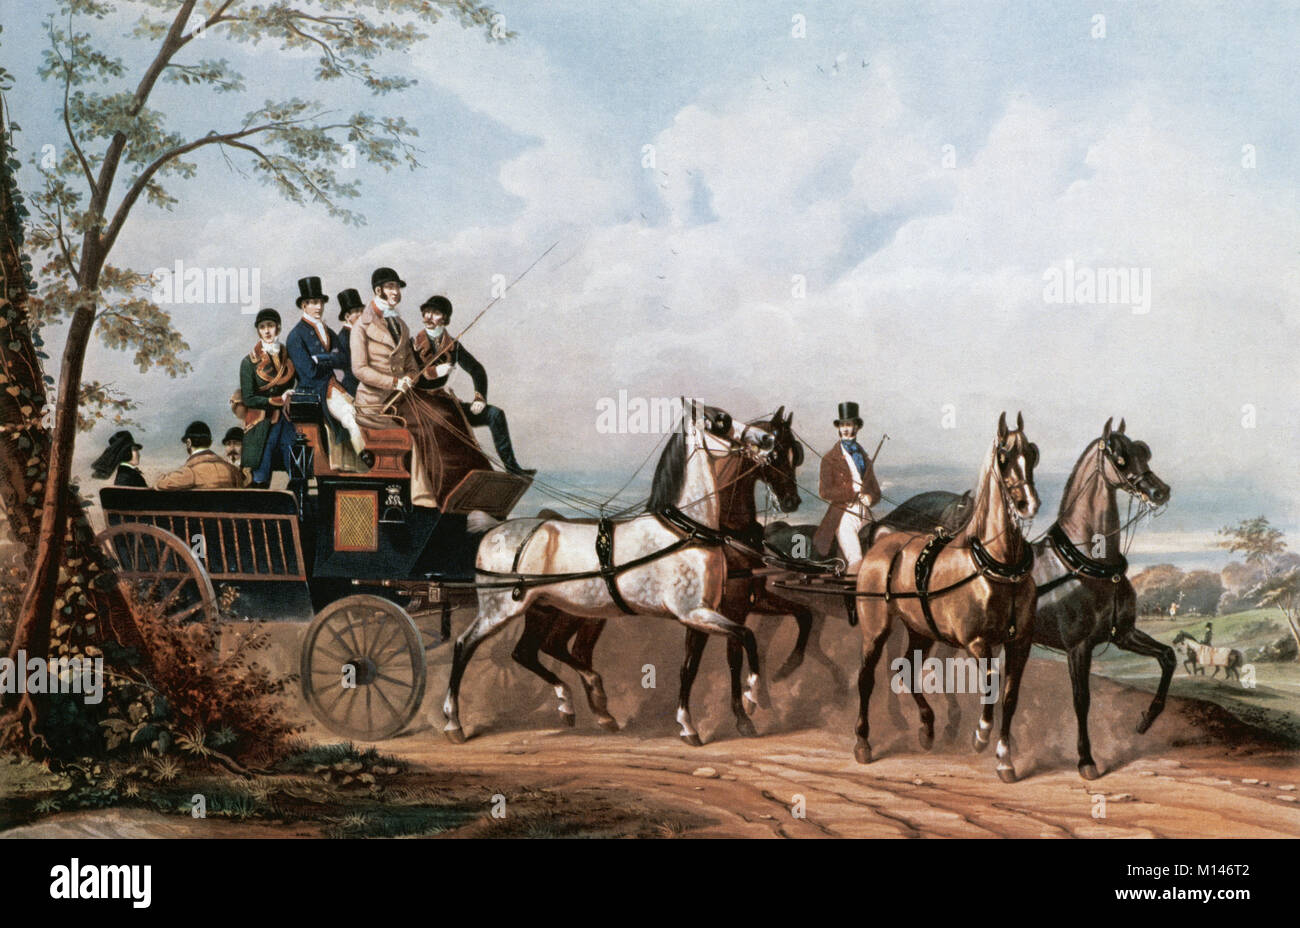 Society. 19th century. The life of a Gentleman in all seasons of the year: the Autumn. Travell in a bourgeoise carridge - Stock Image